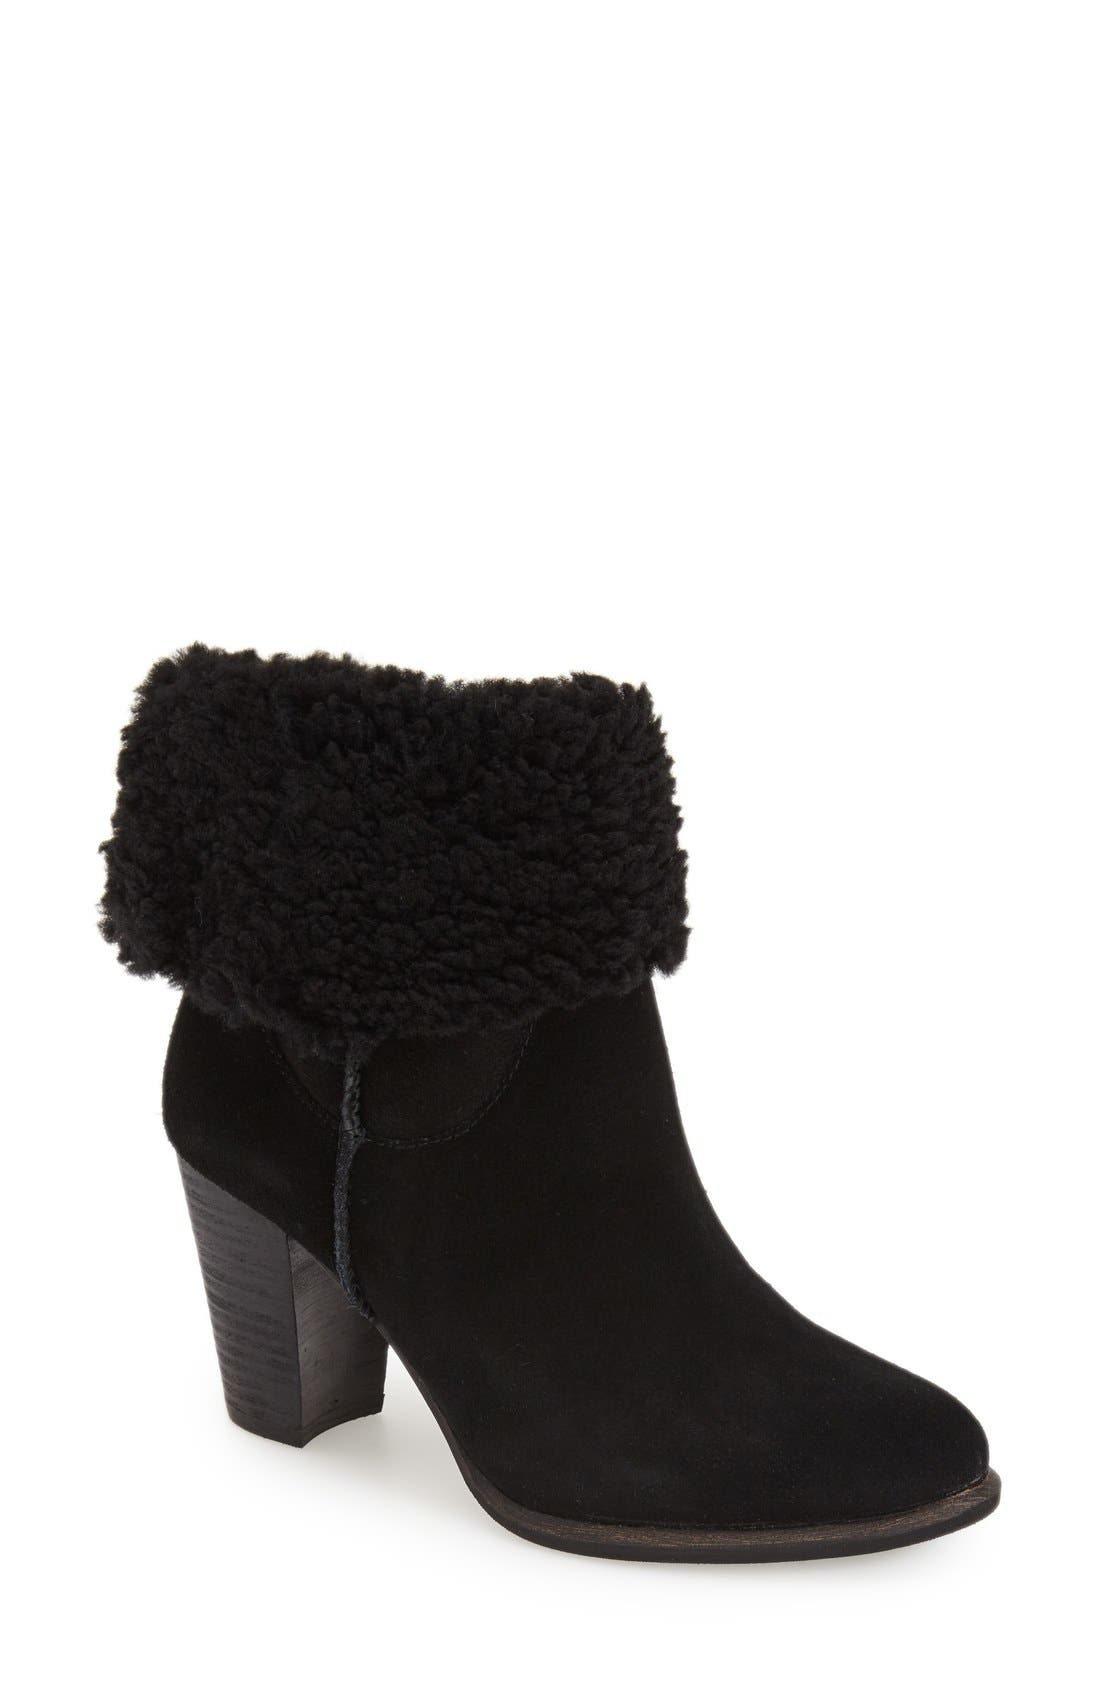 Alternate Image 1 Selected - UGG® Australia 'Charlee' Shearling Cuff Bootie (Women)